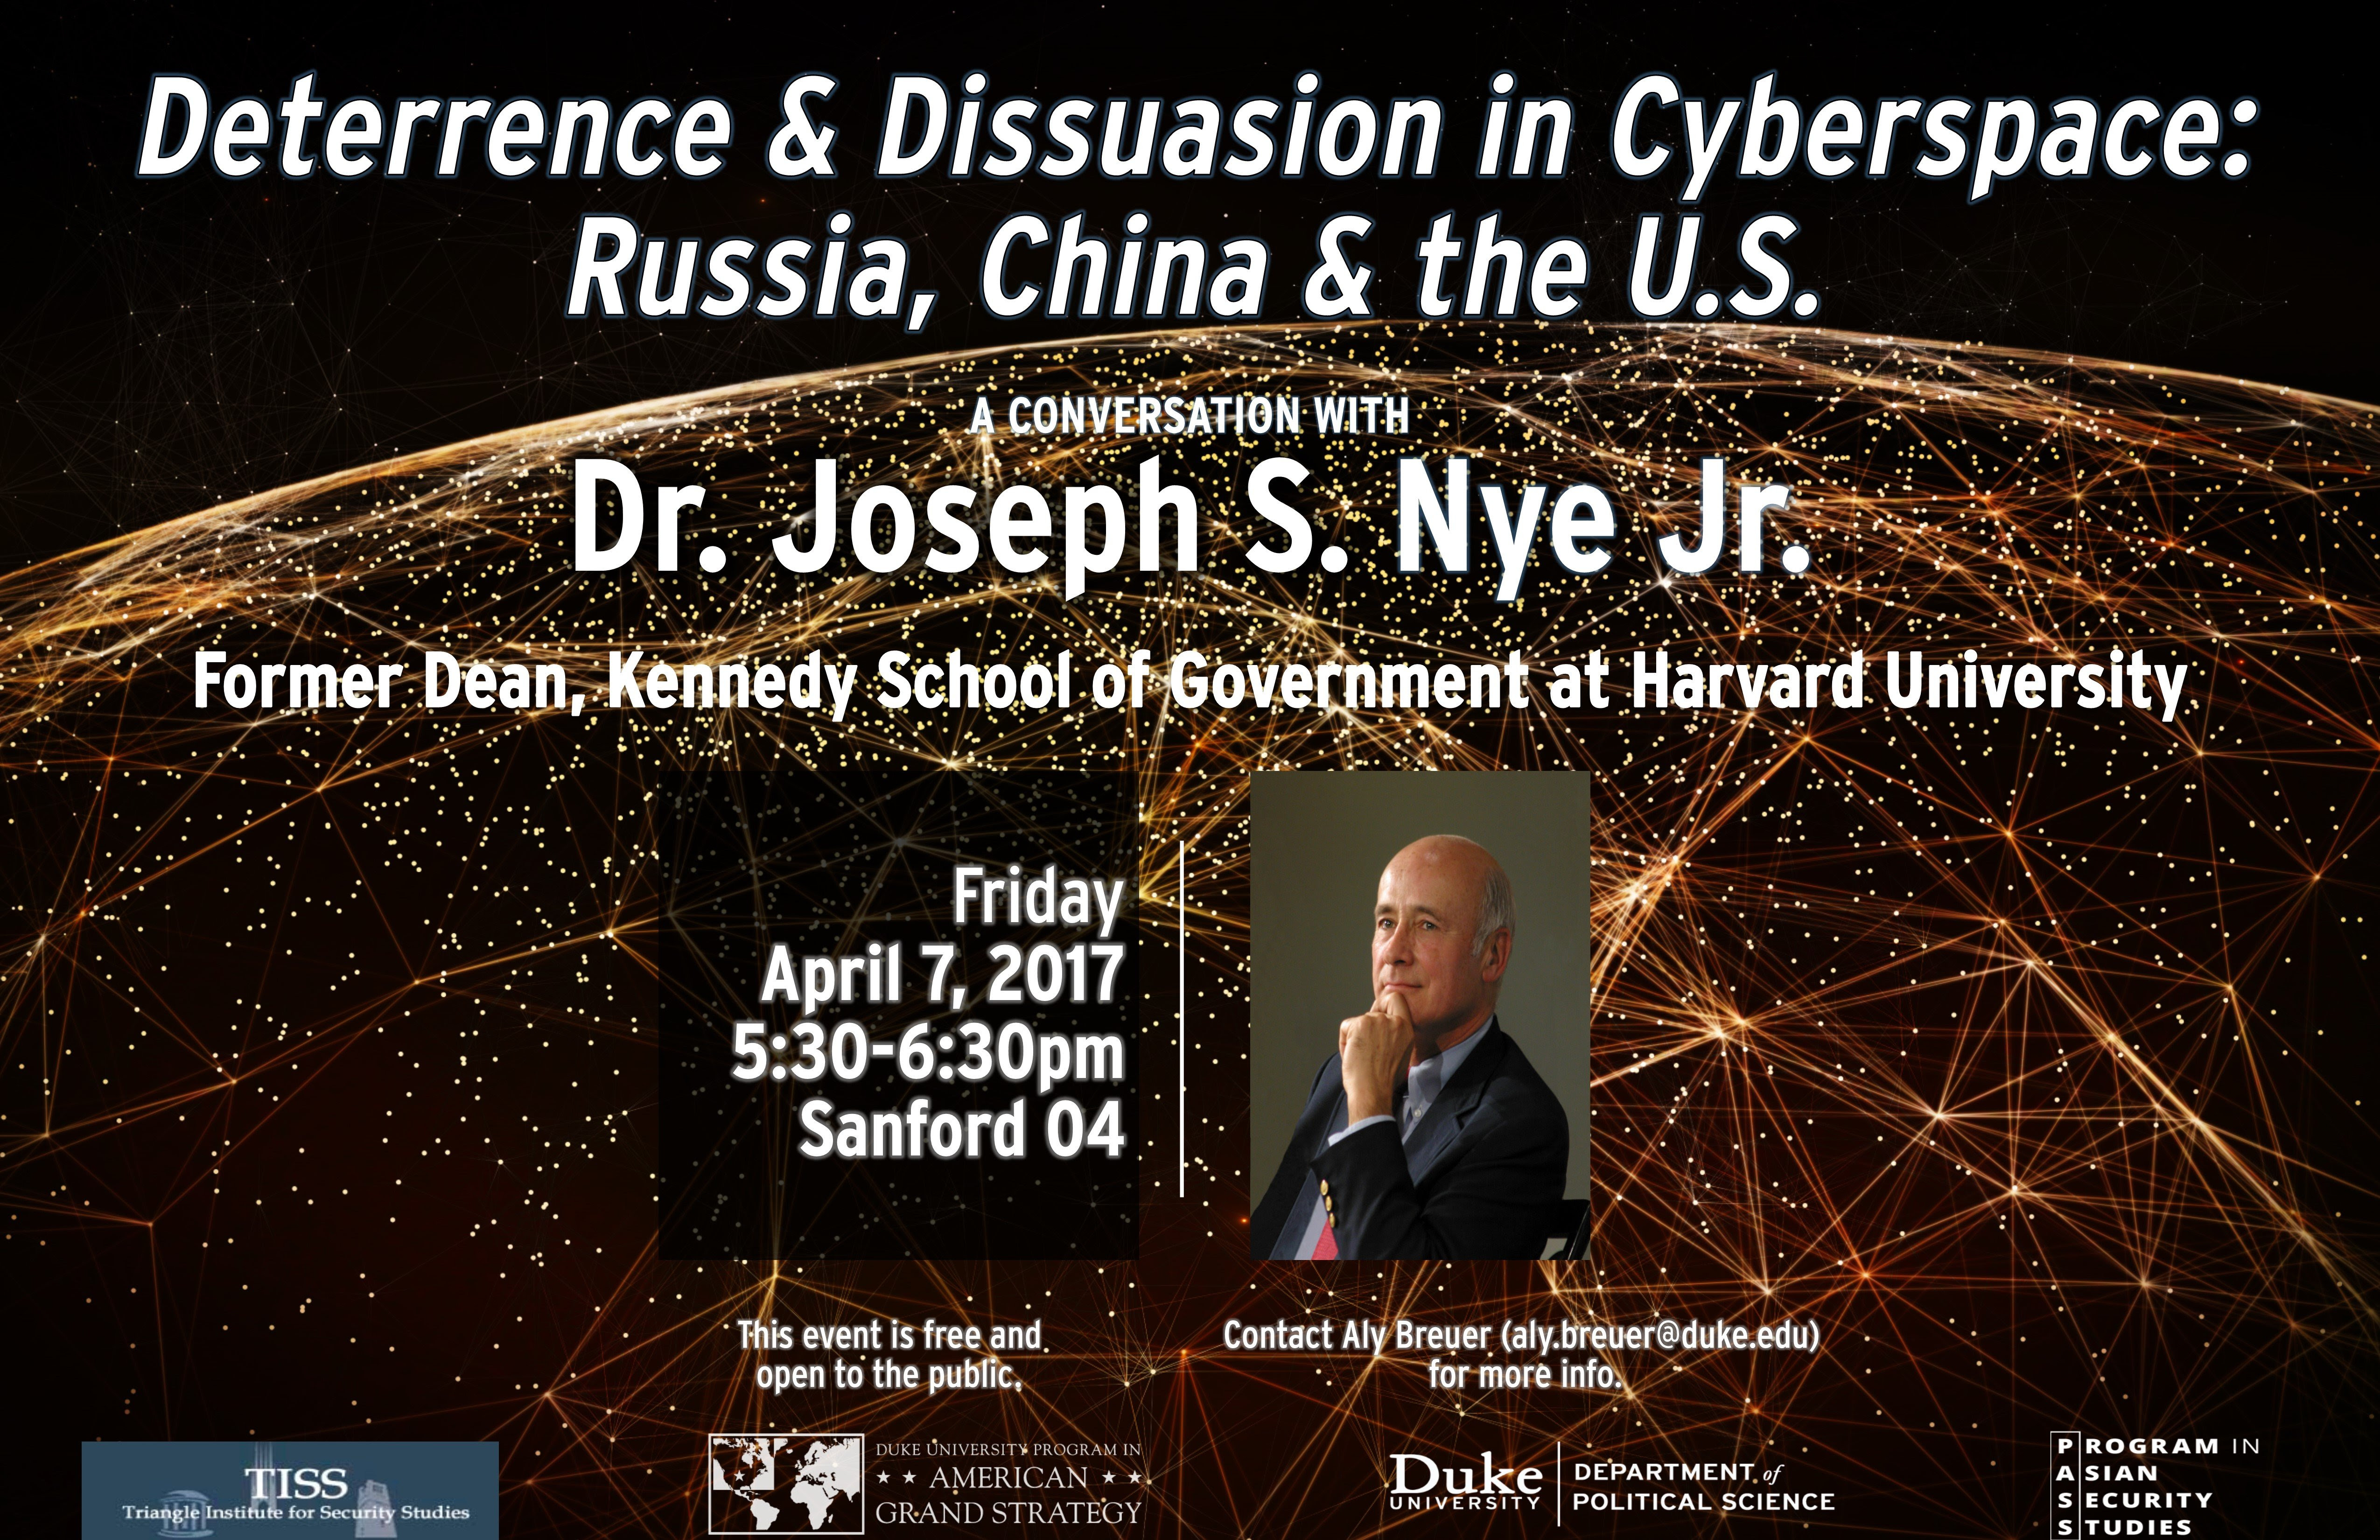 Deterrence & Dissuasion in Cyberspace: Russia, China & the U.S. @ Sanford 04, Sanford School of Public Policy | Durham | North Carolina | United States